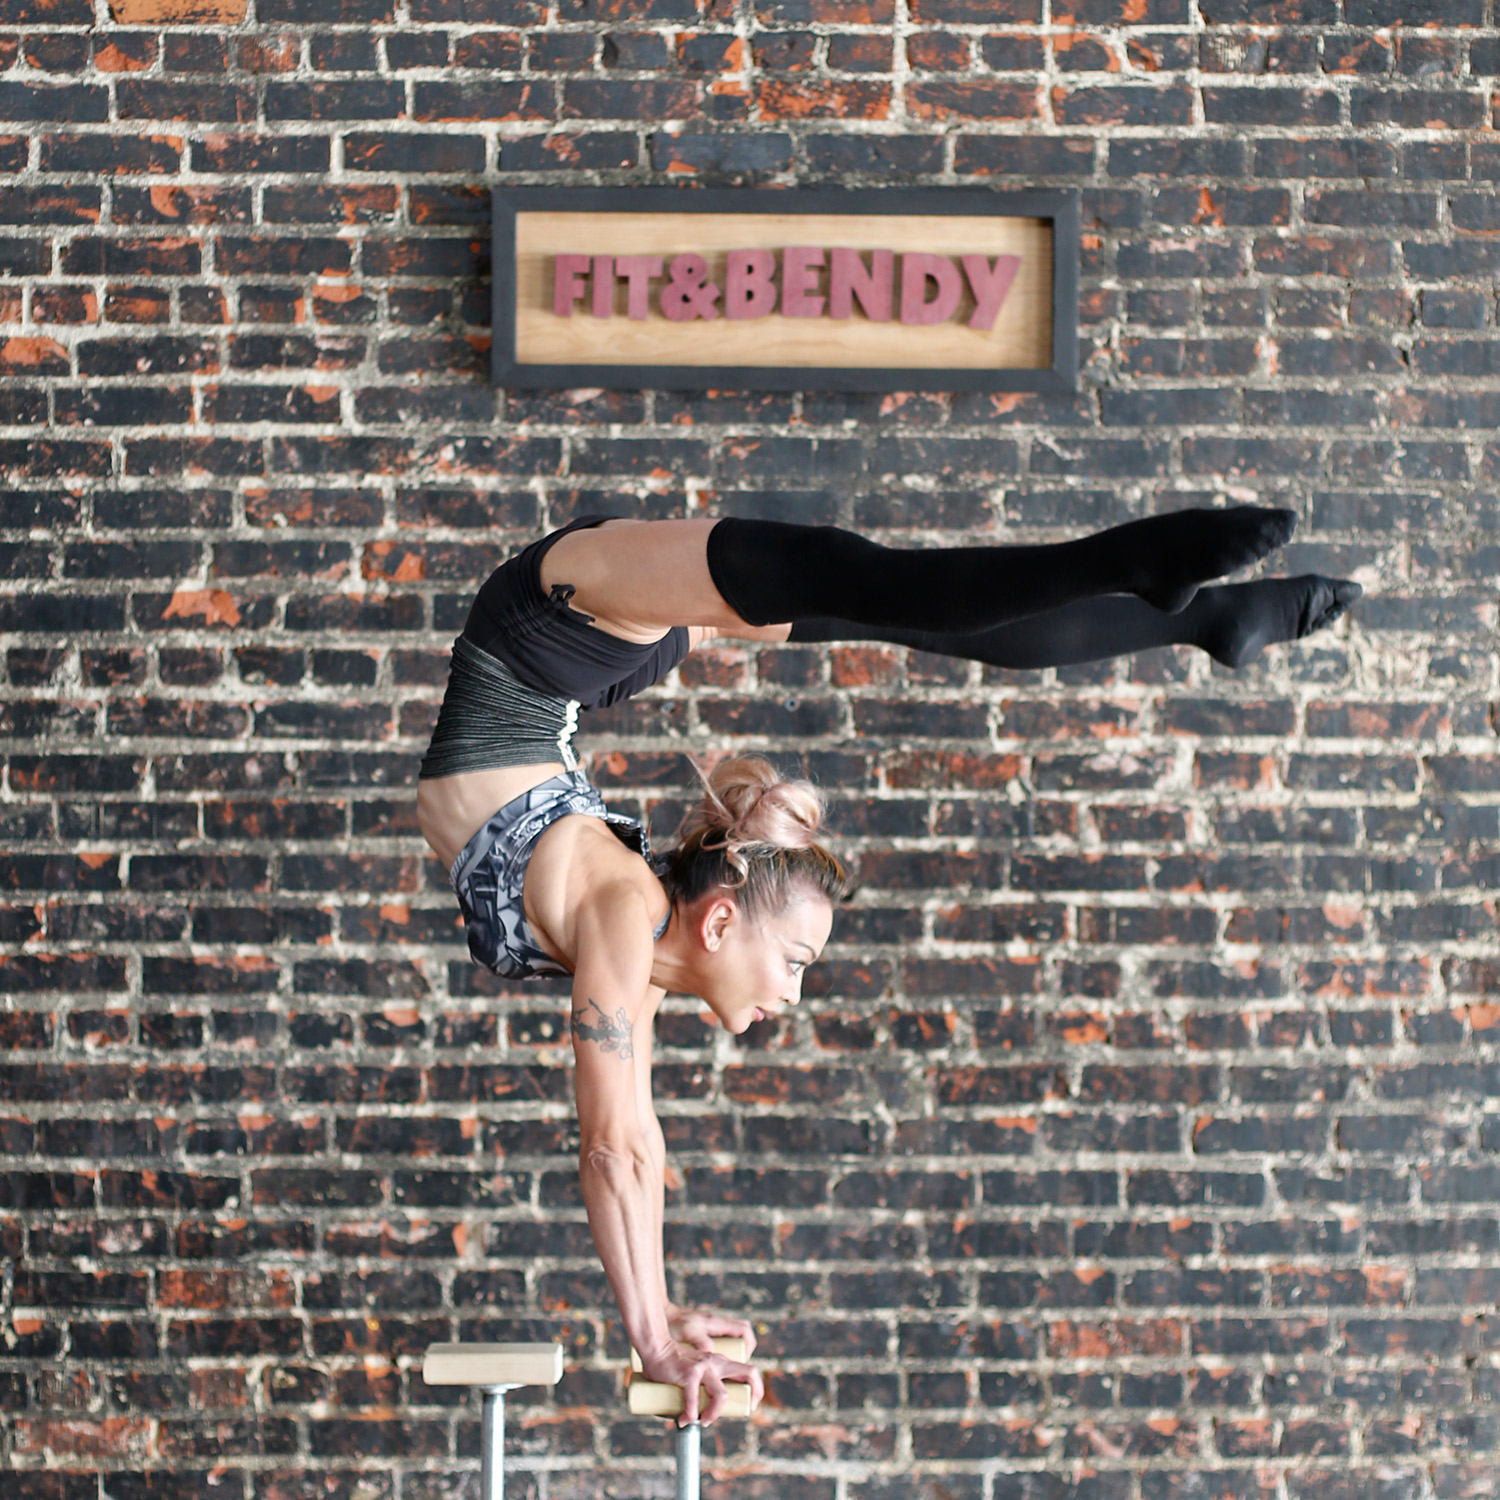 Lena Instructor Fit and Bendy Intro to Woman Contortion Handstand Flexibility Fitness Brick Wall